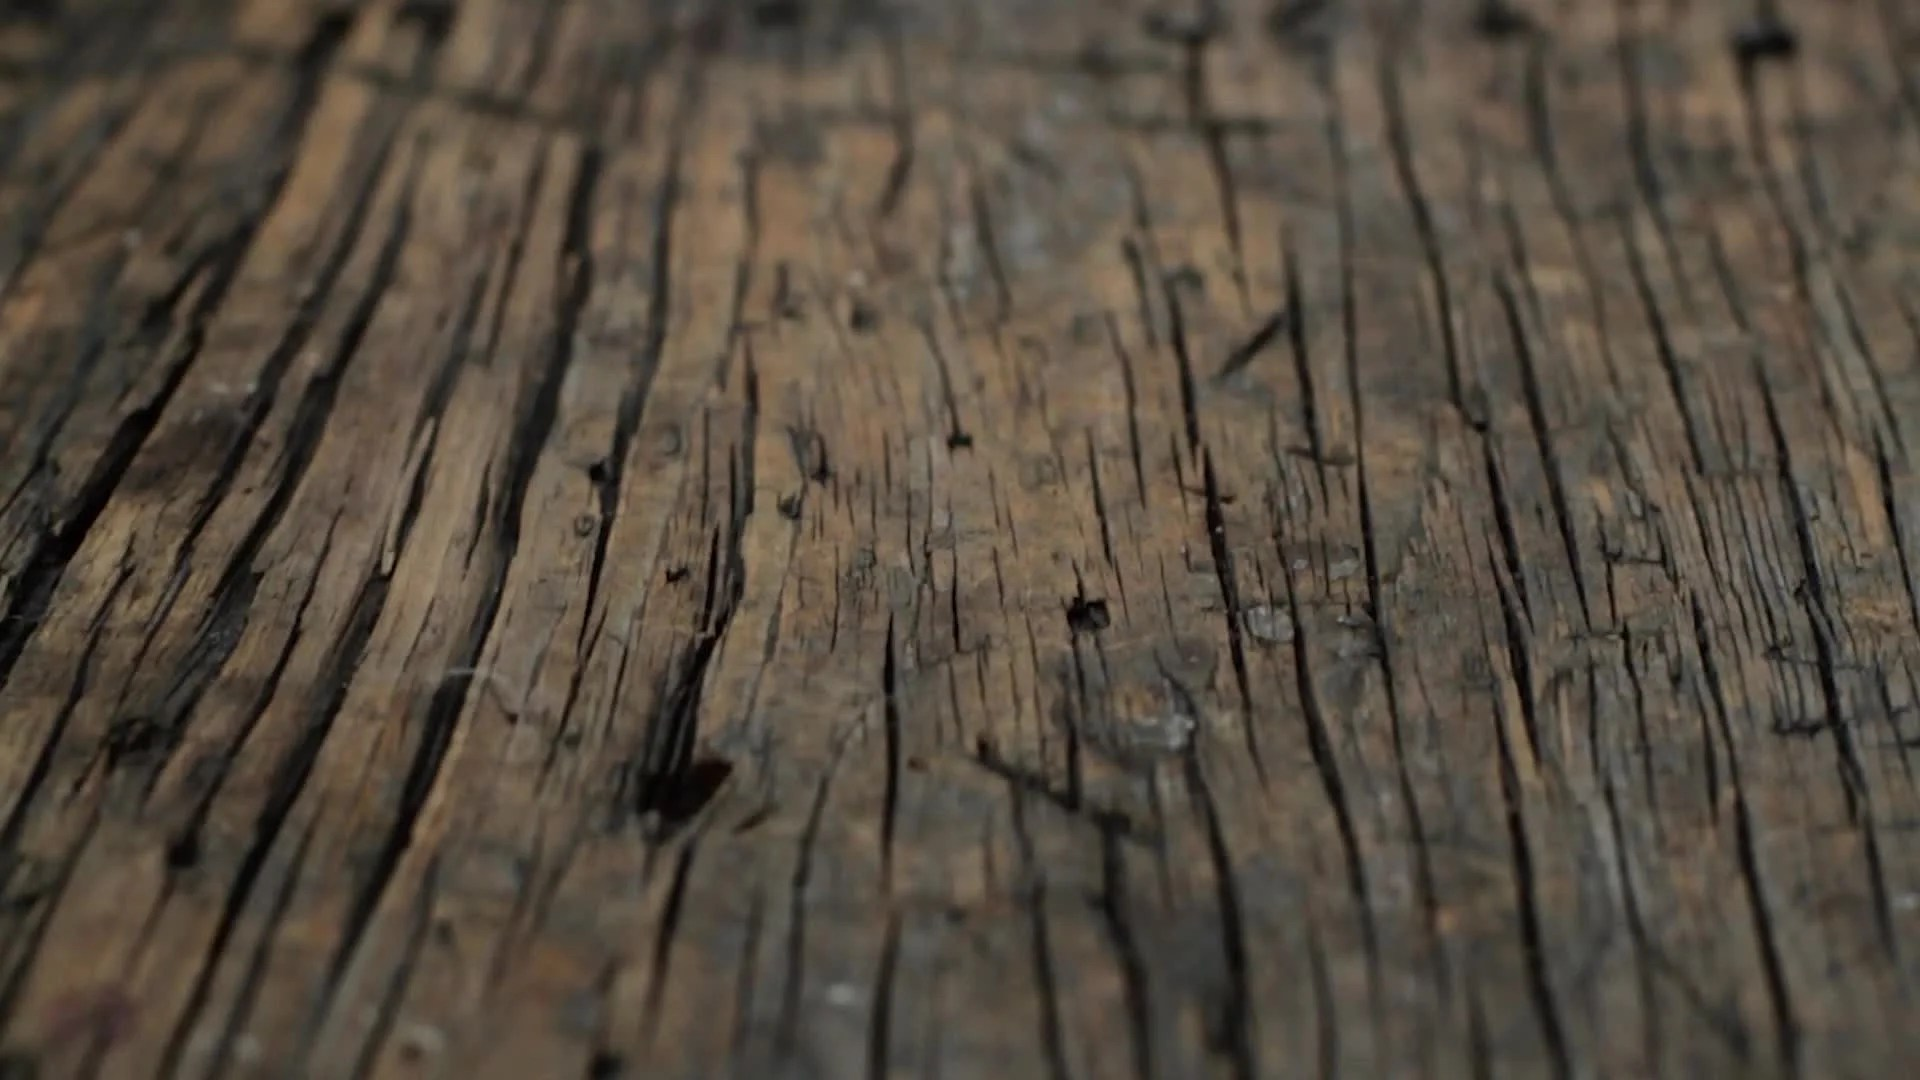 3d Virus Wallpaper Video Primitive Driftwood Texture Rough Wood Surface